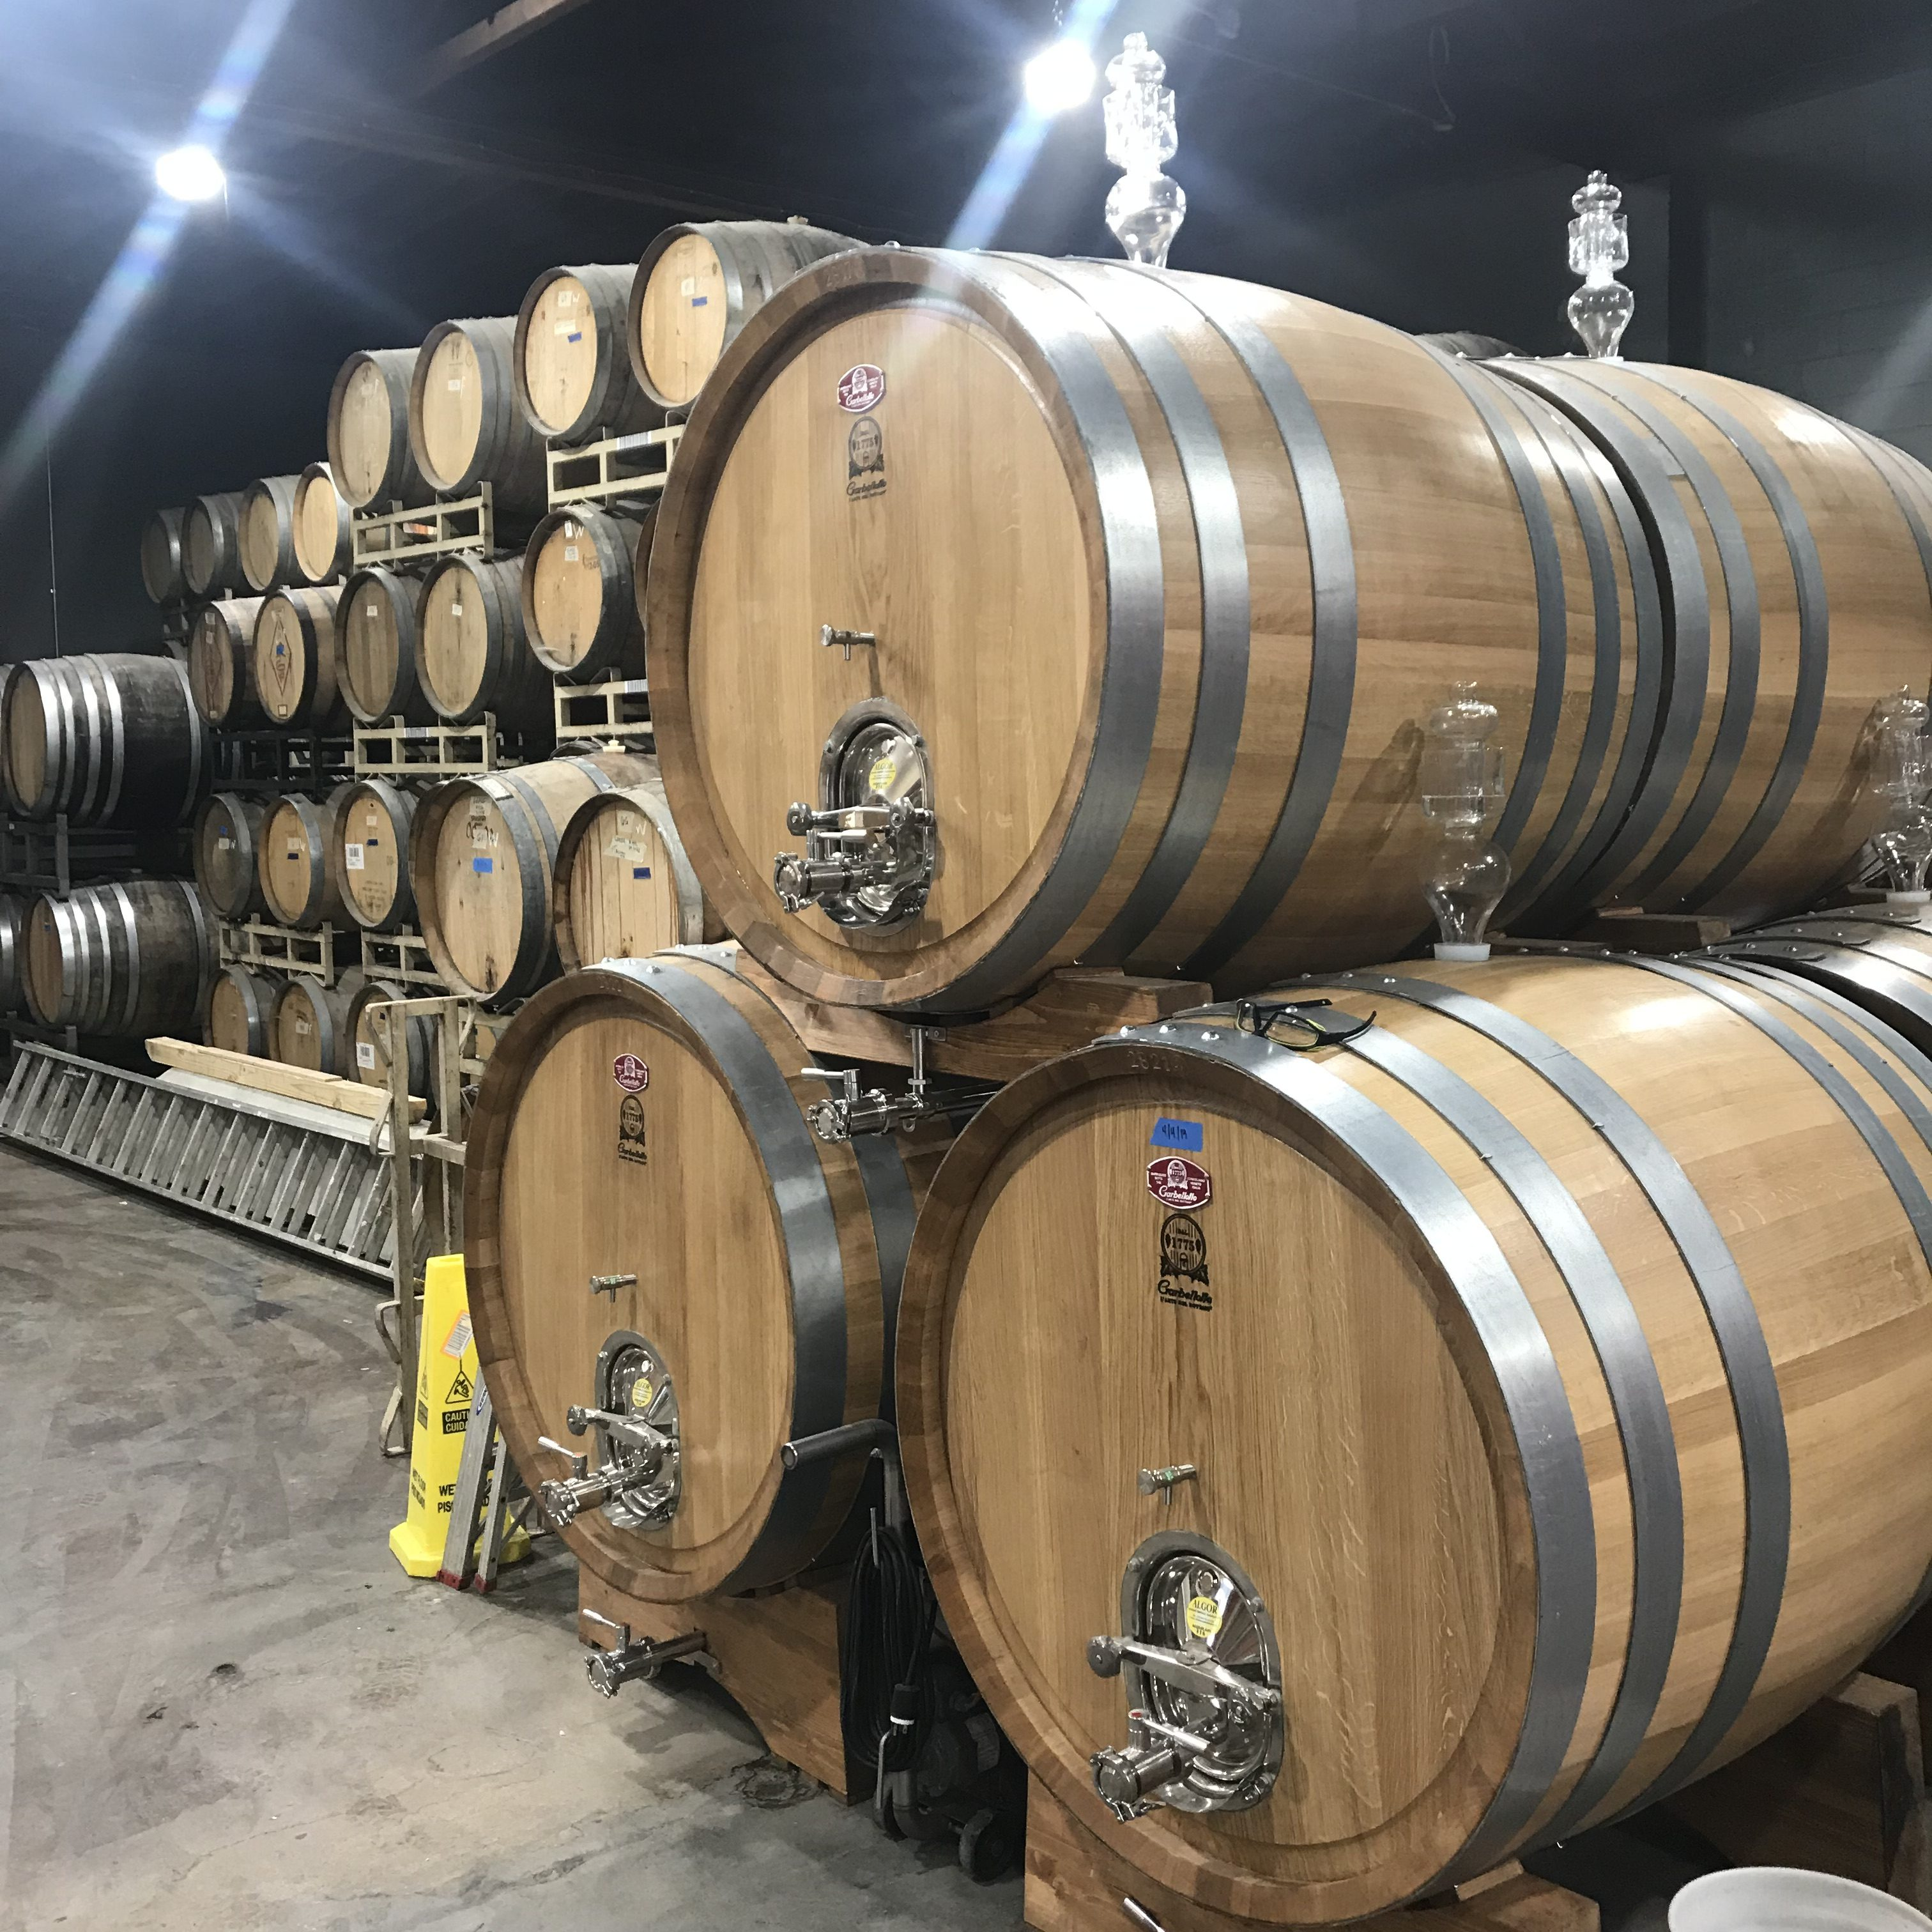 Barrel-aging will become an even larger focus at E9 Brewing. (image courtesy of E9 Brewing Co.)